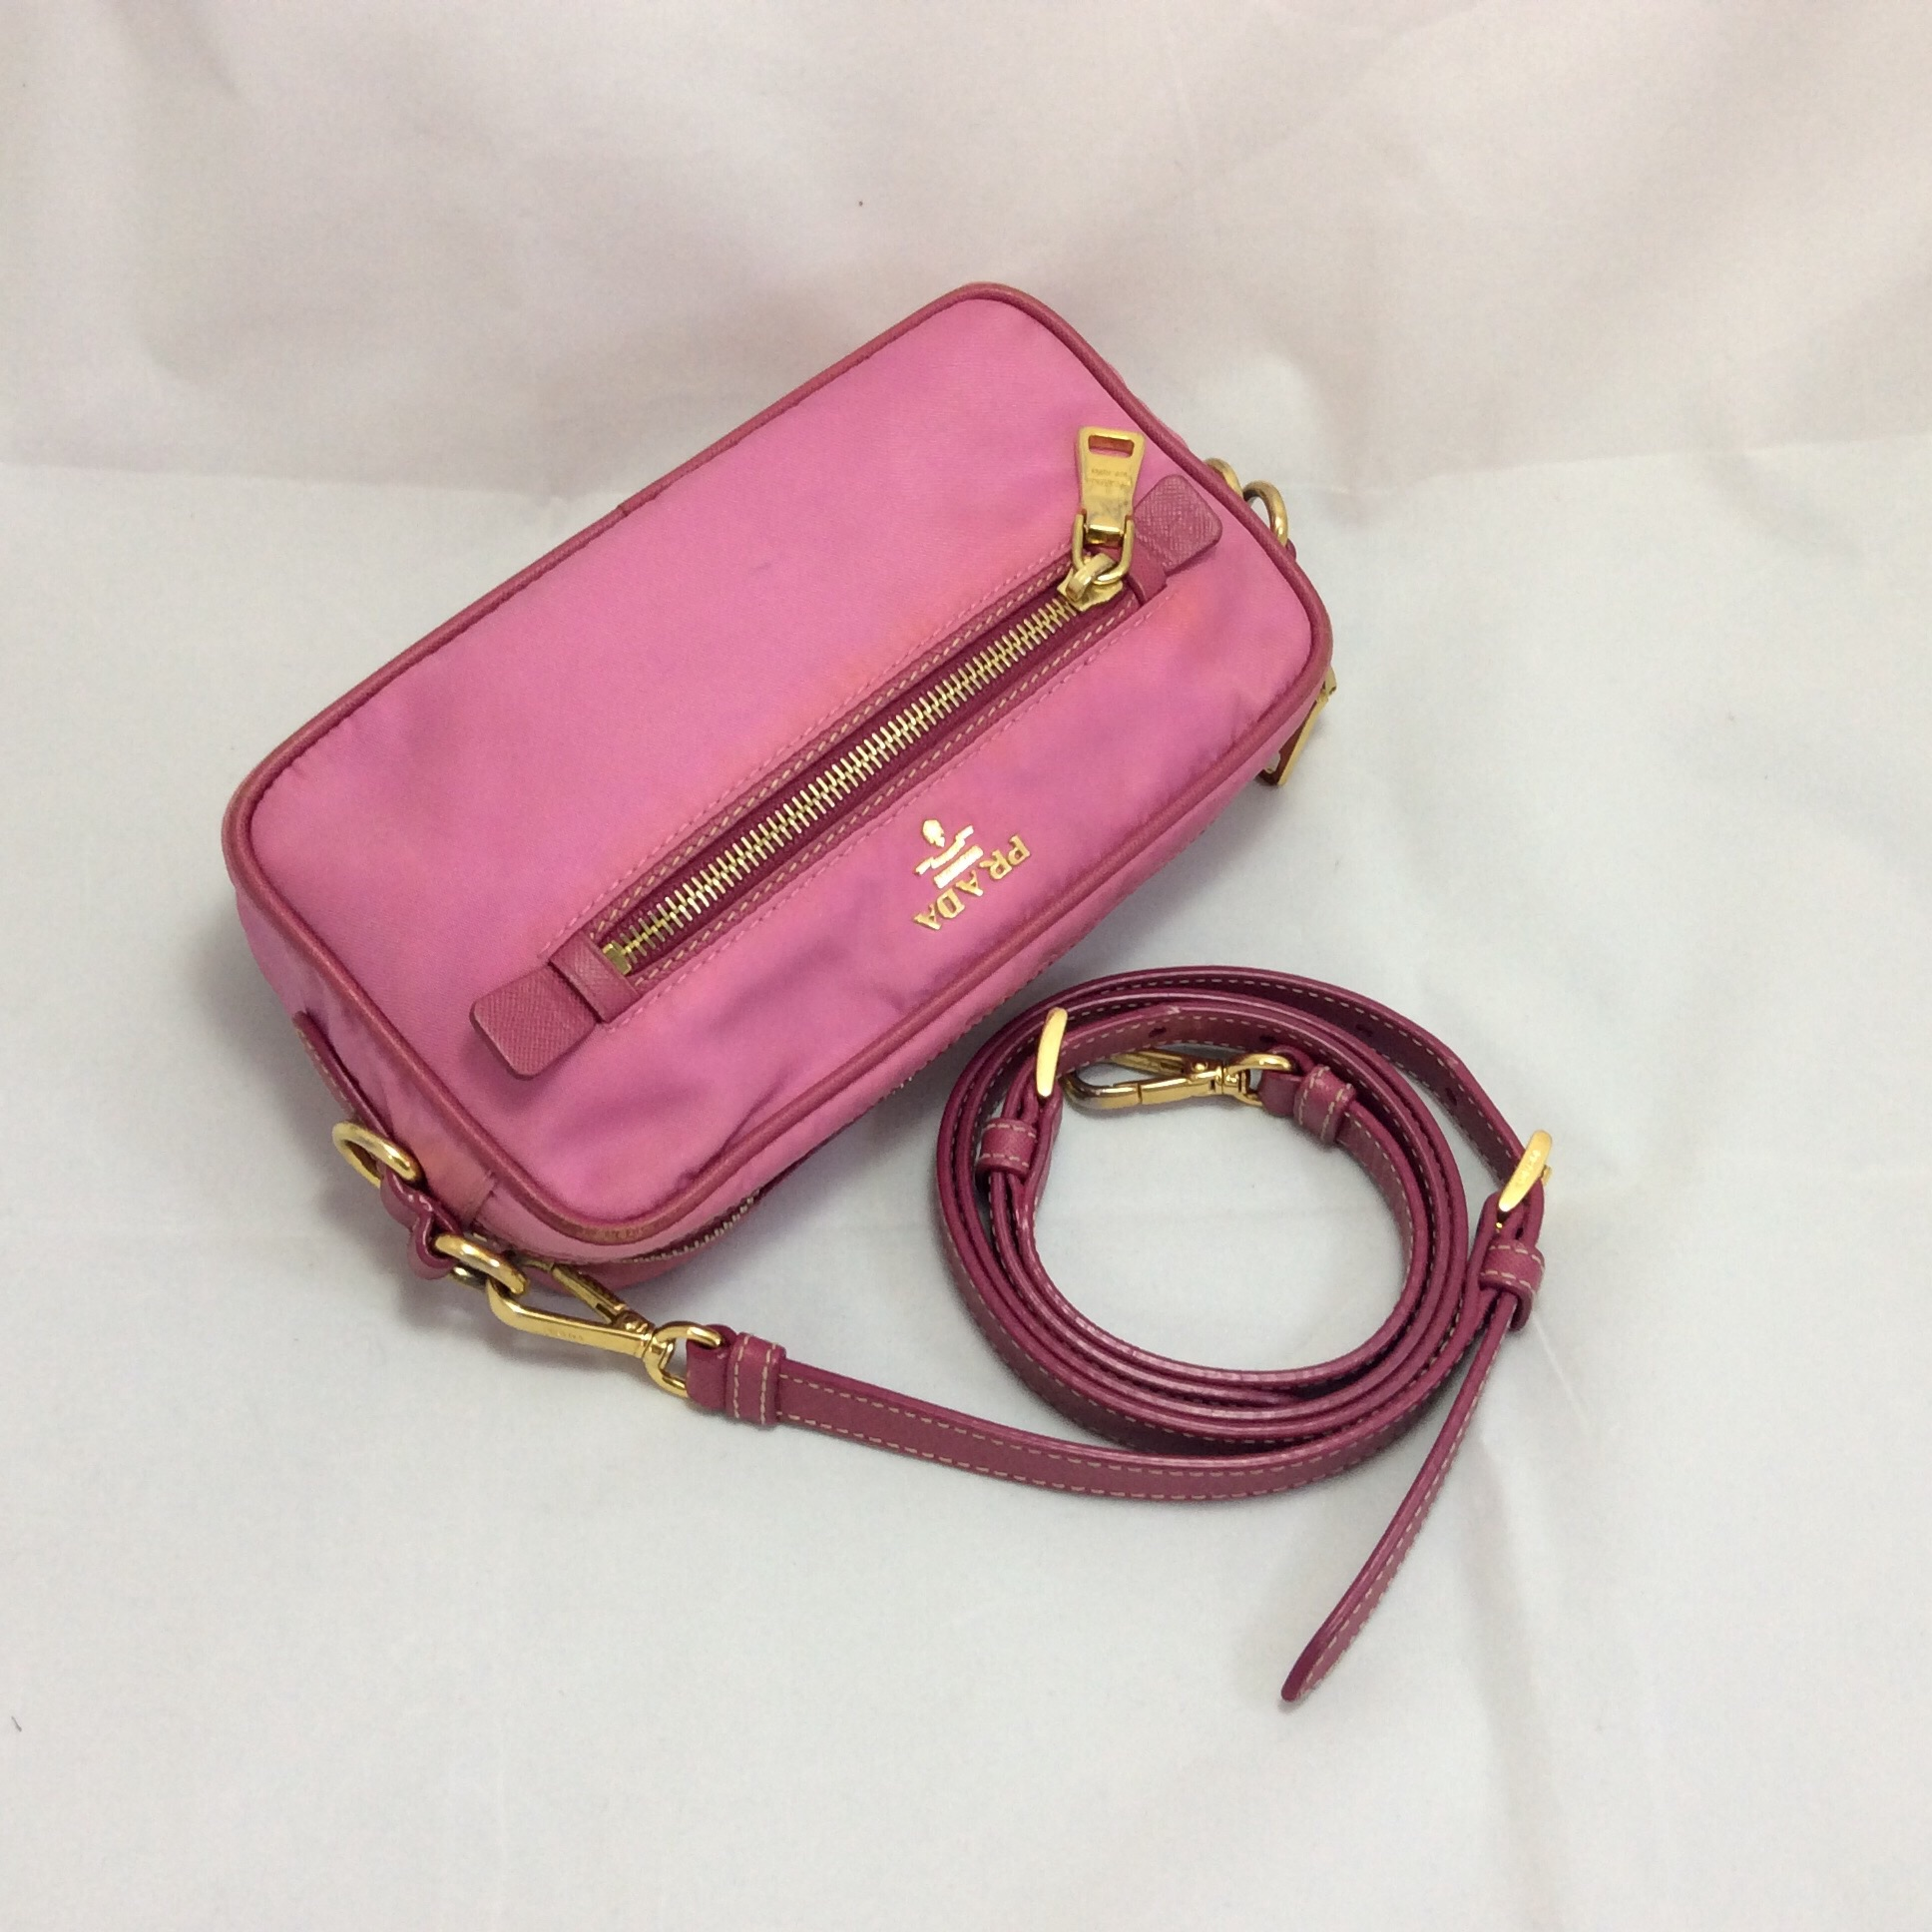 pink prada cross body bag